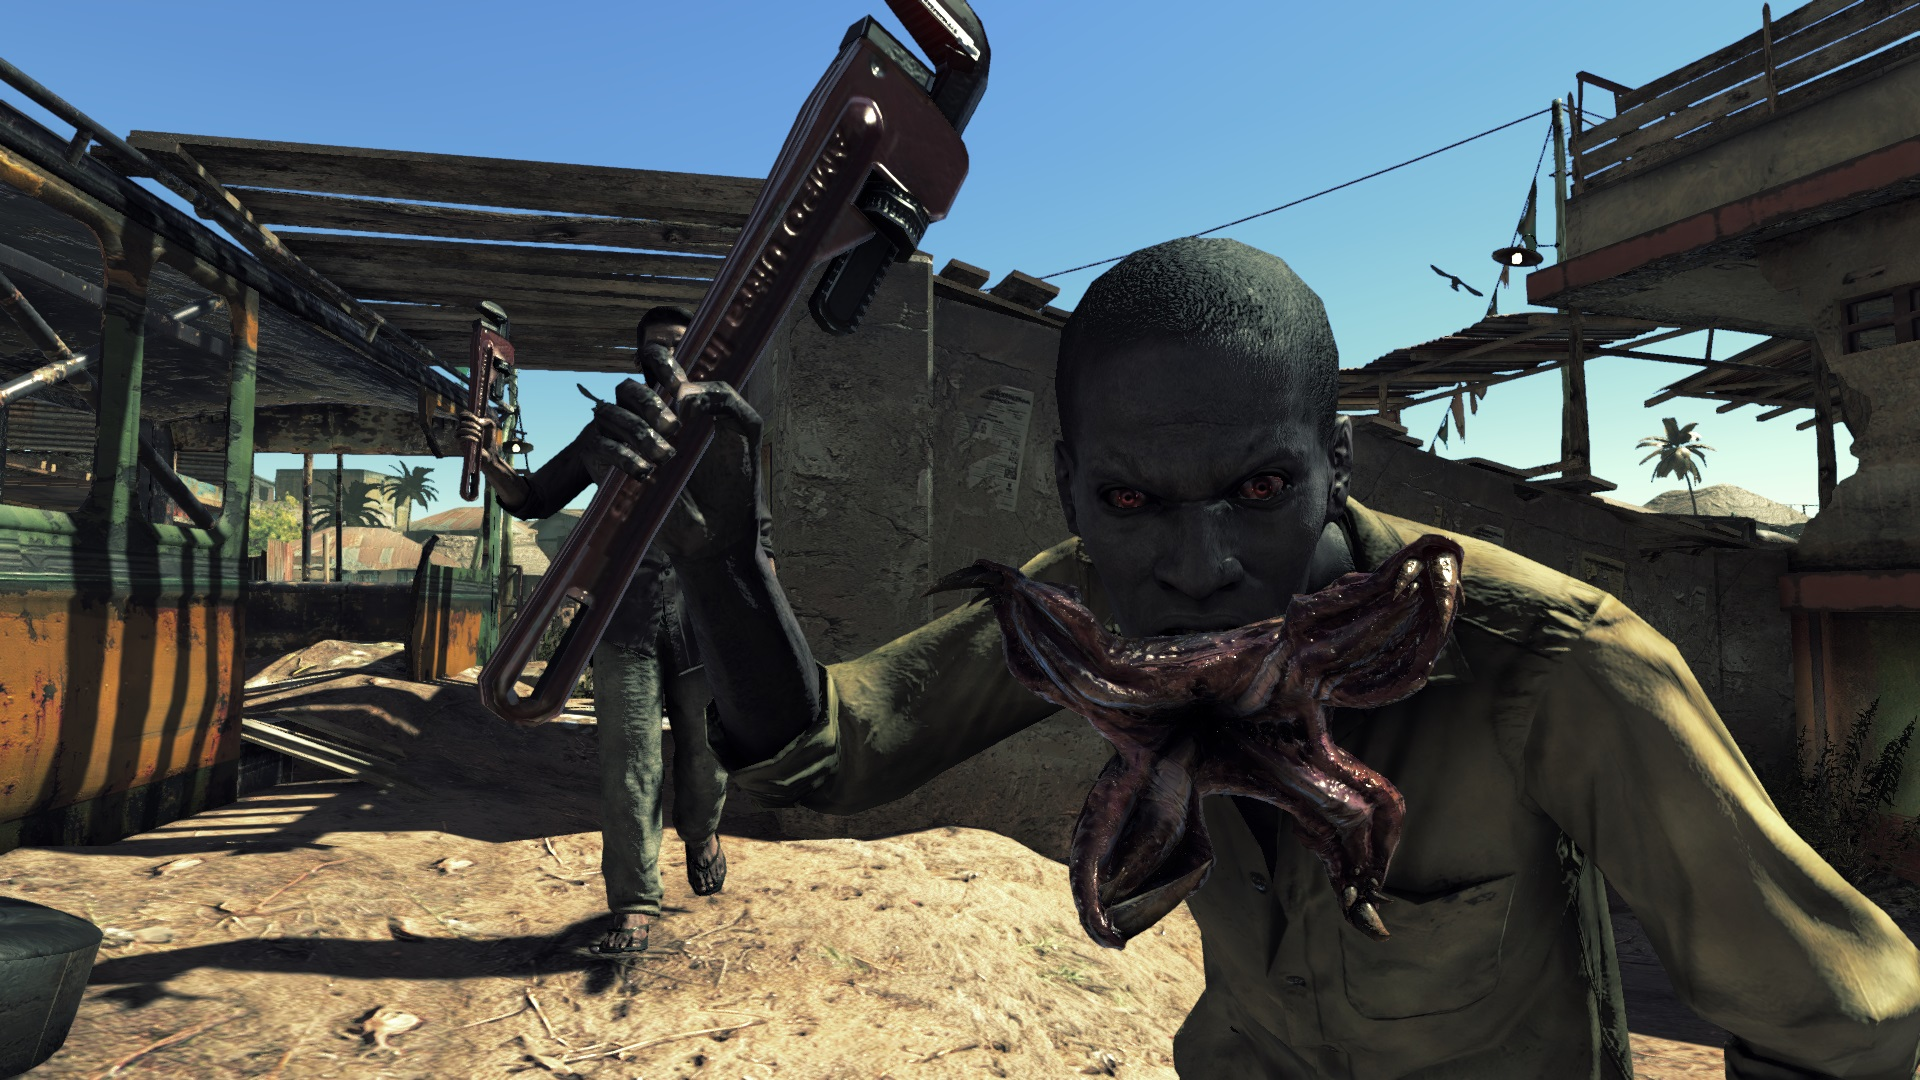 Check out Resident Evil 5's Kijuju in Umbrella Corps